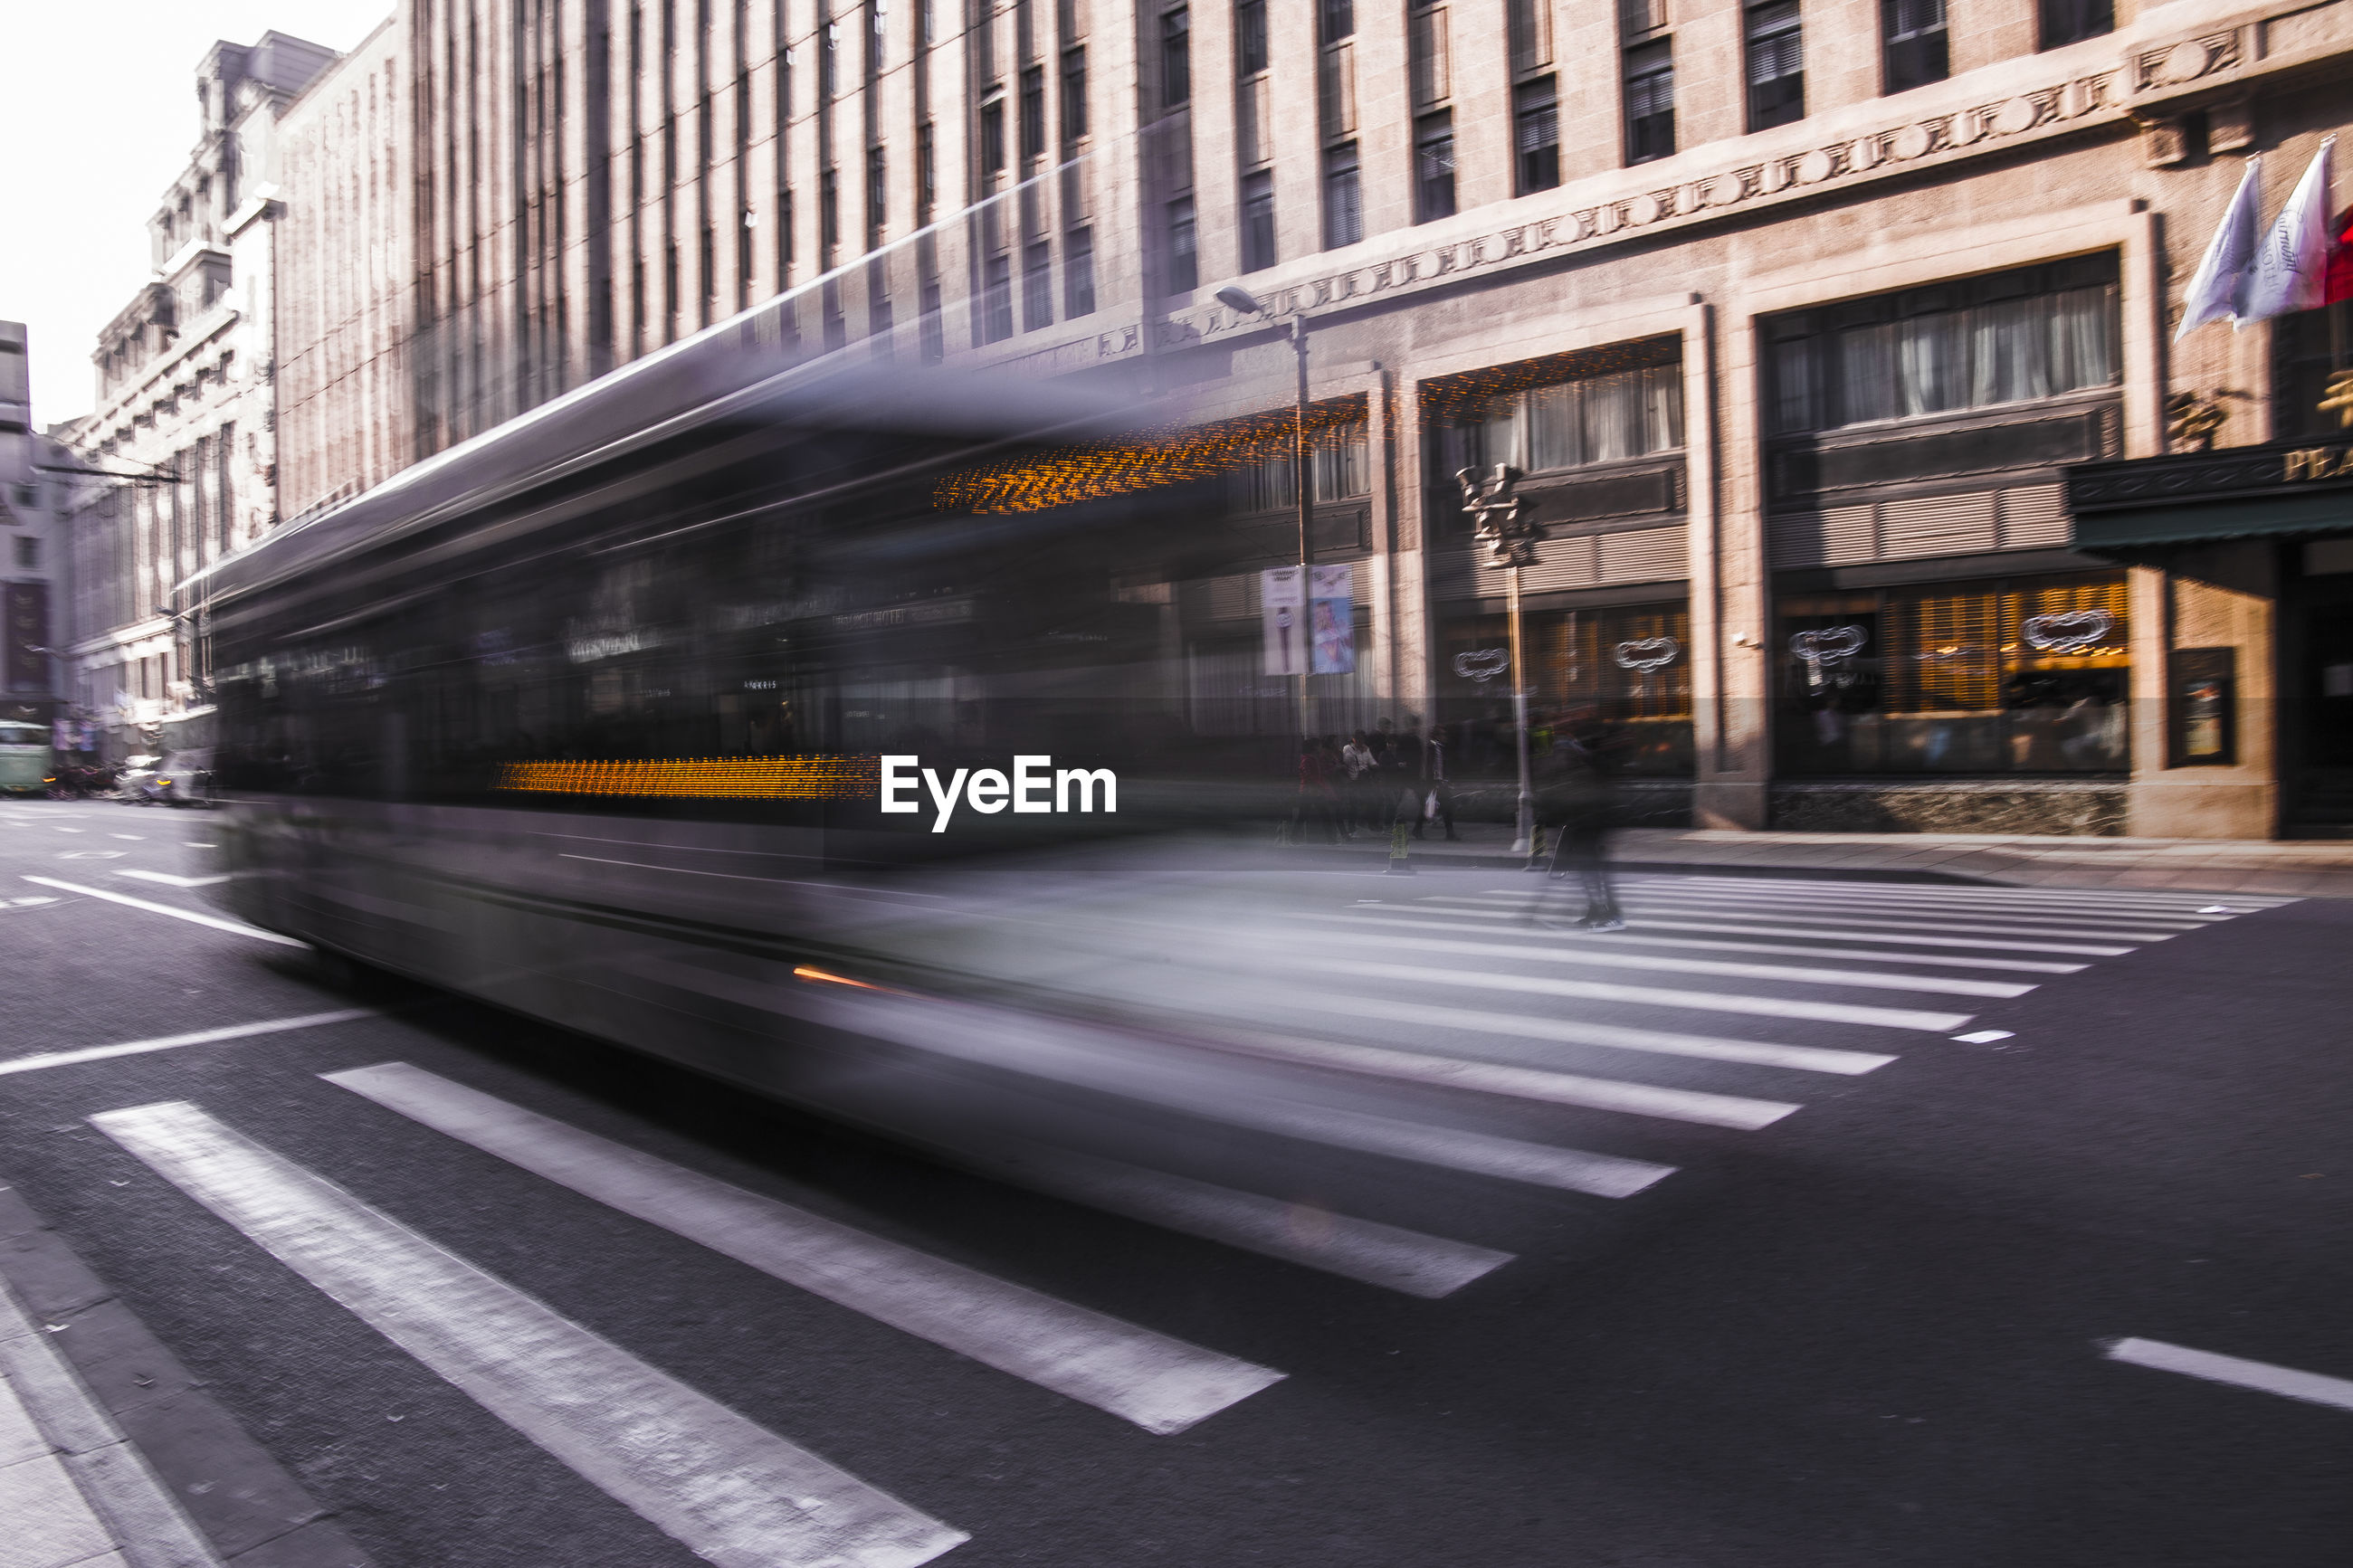 Blurred motion of bus on road in city